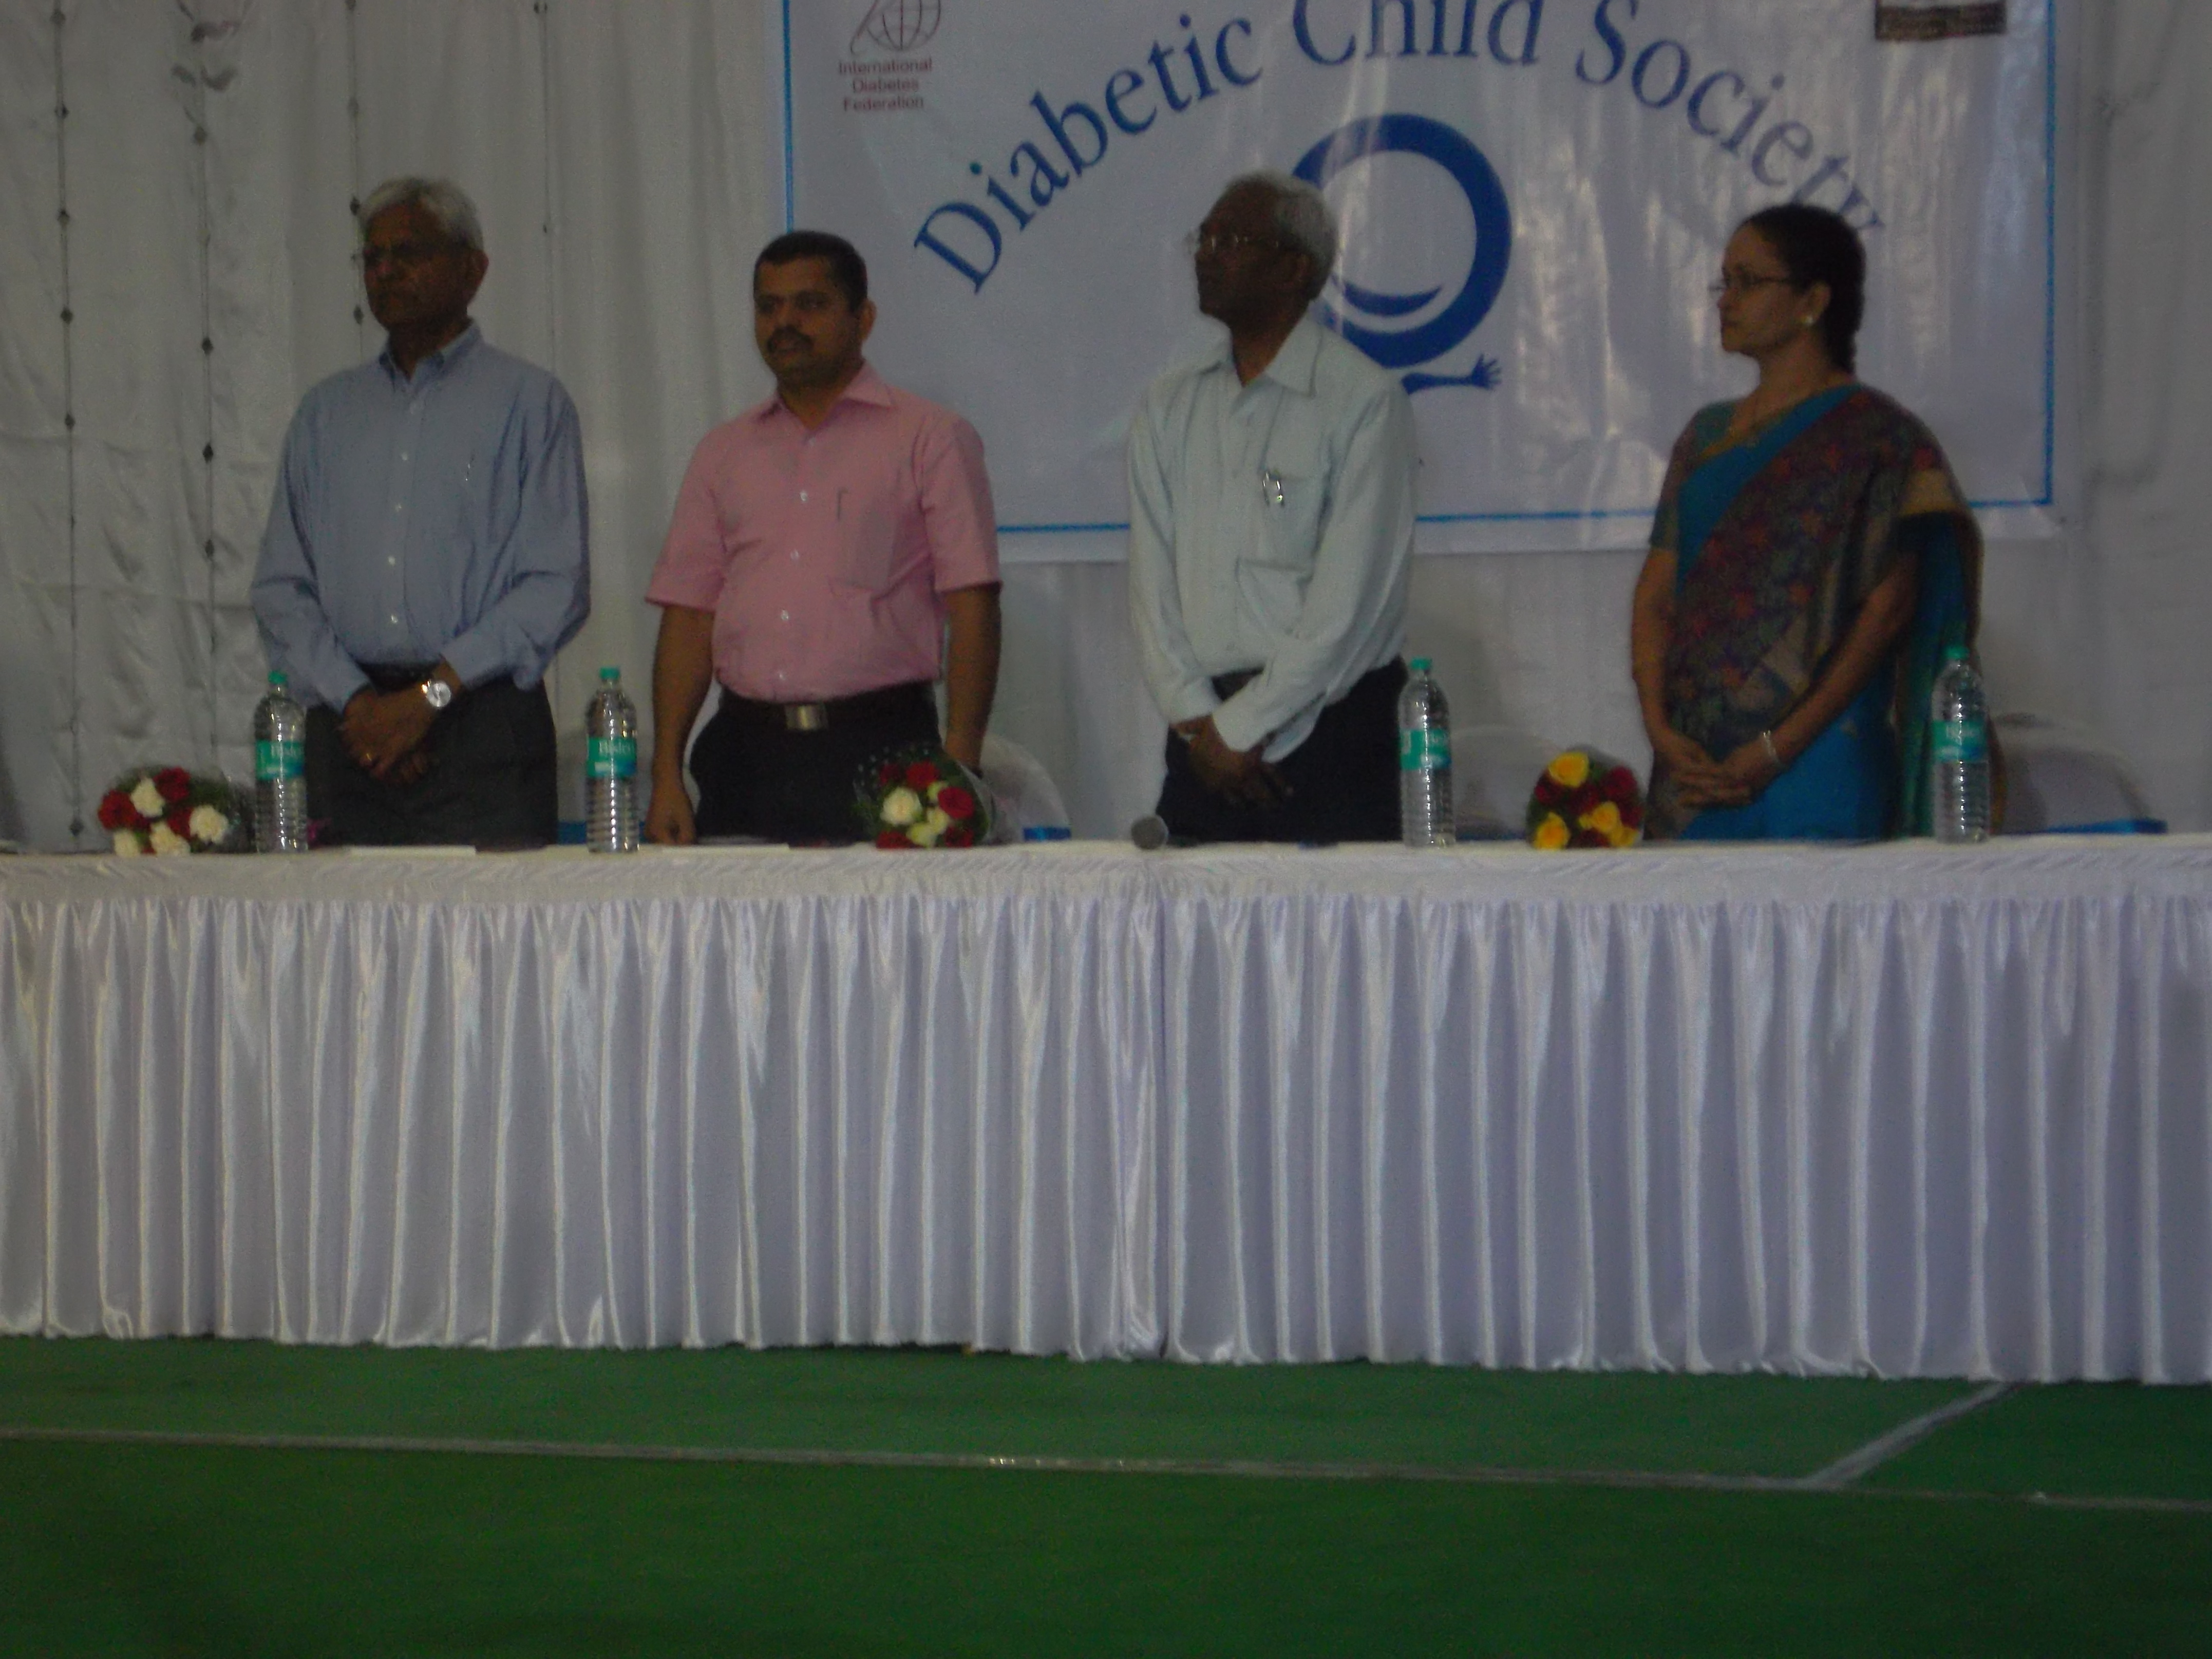 Conference-Diabetic-Child-Society-Vizag-AP-India-SAM_2043